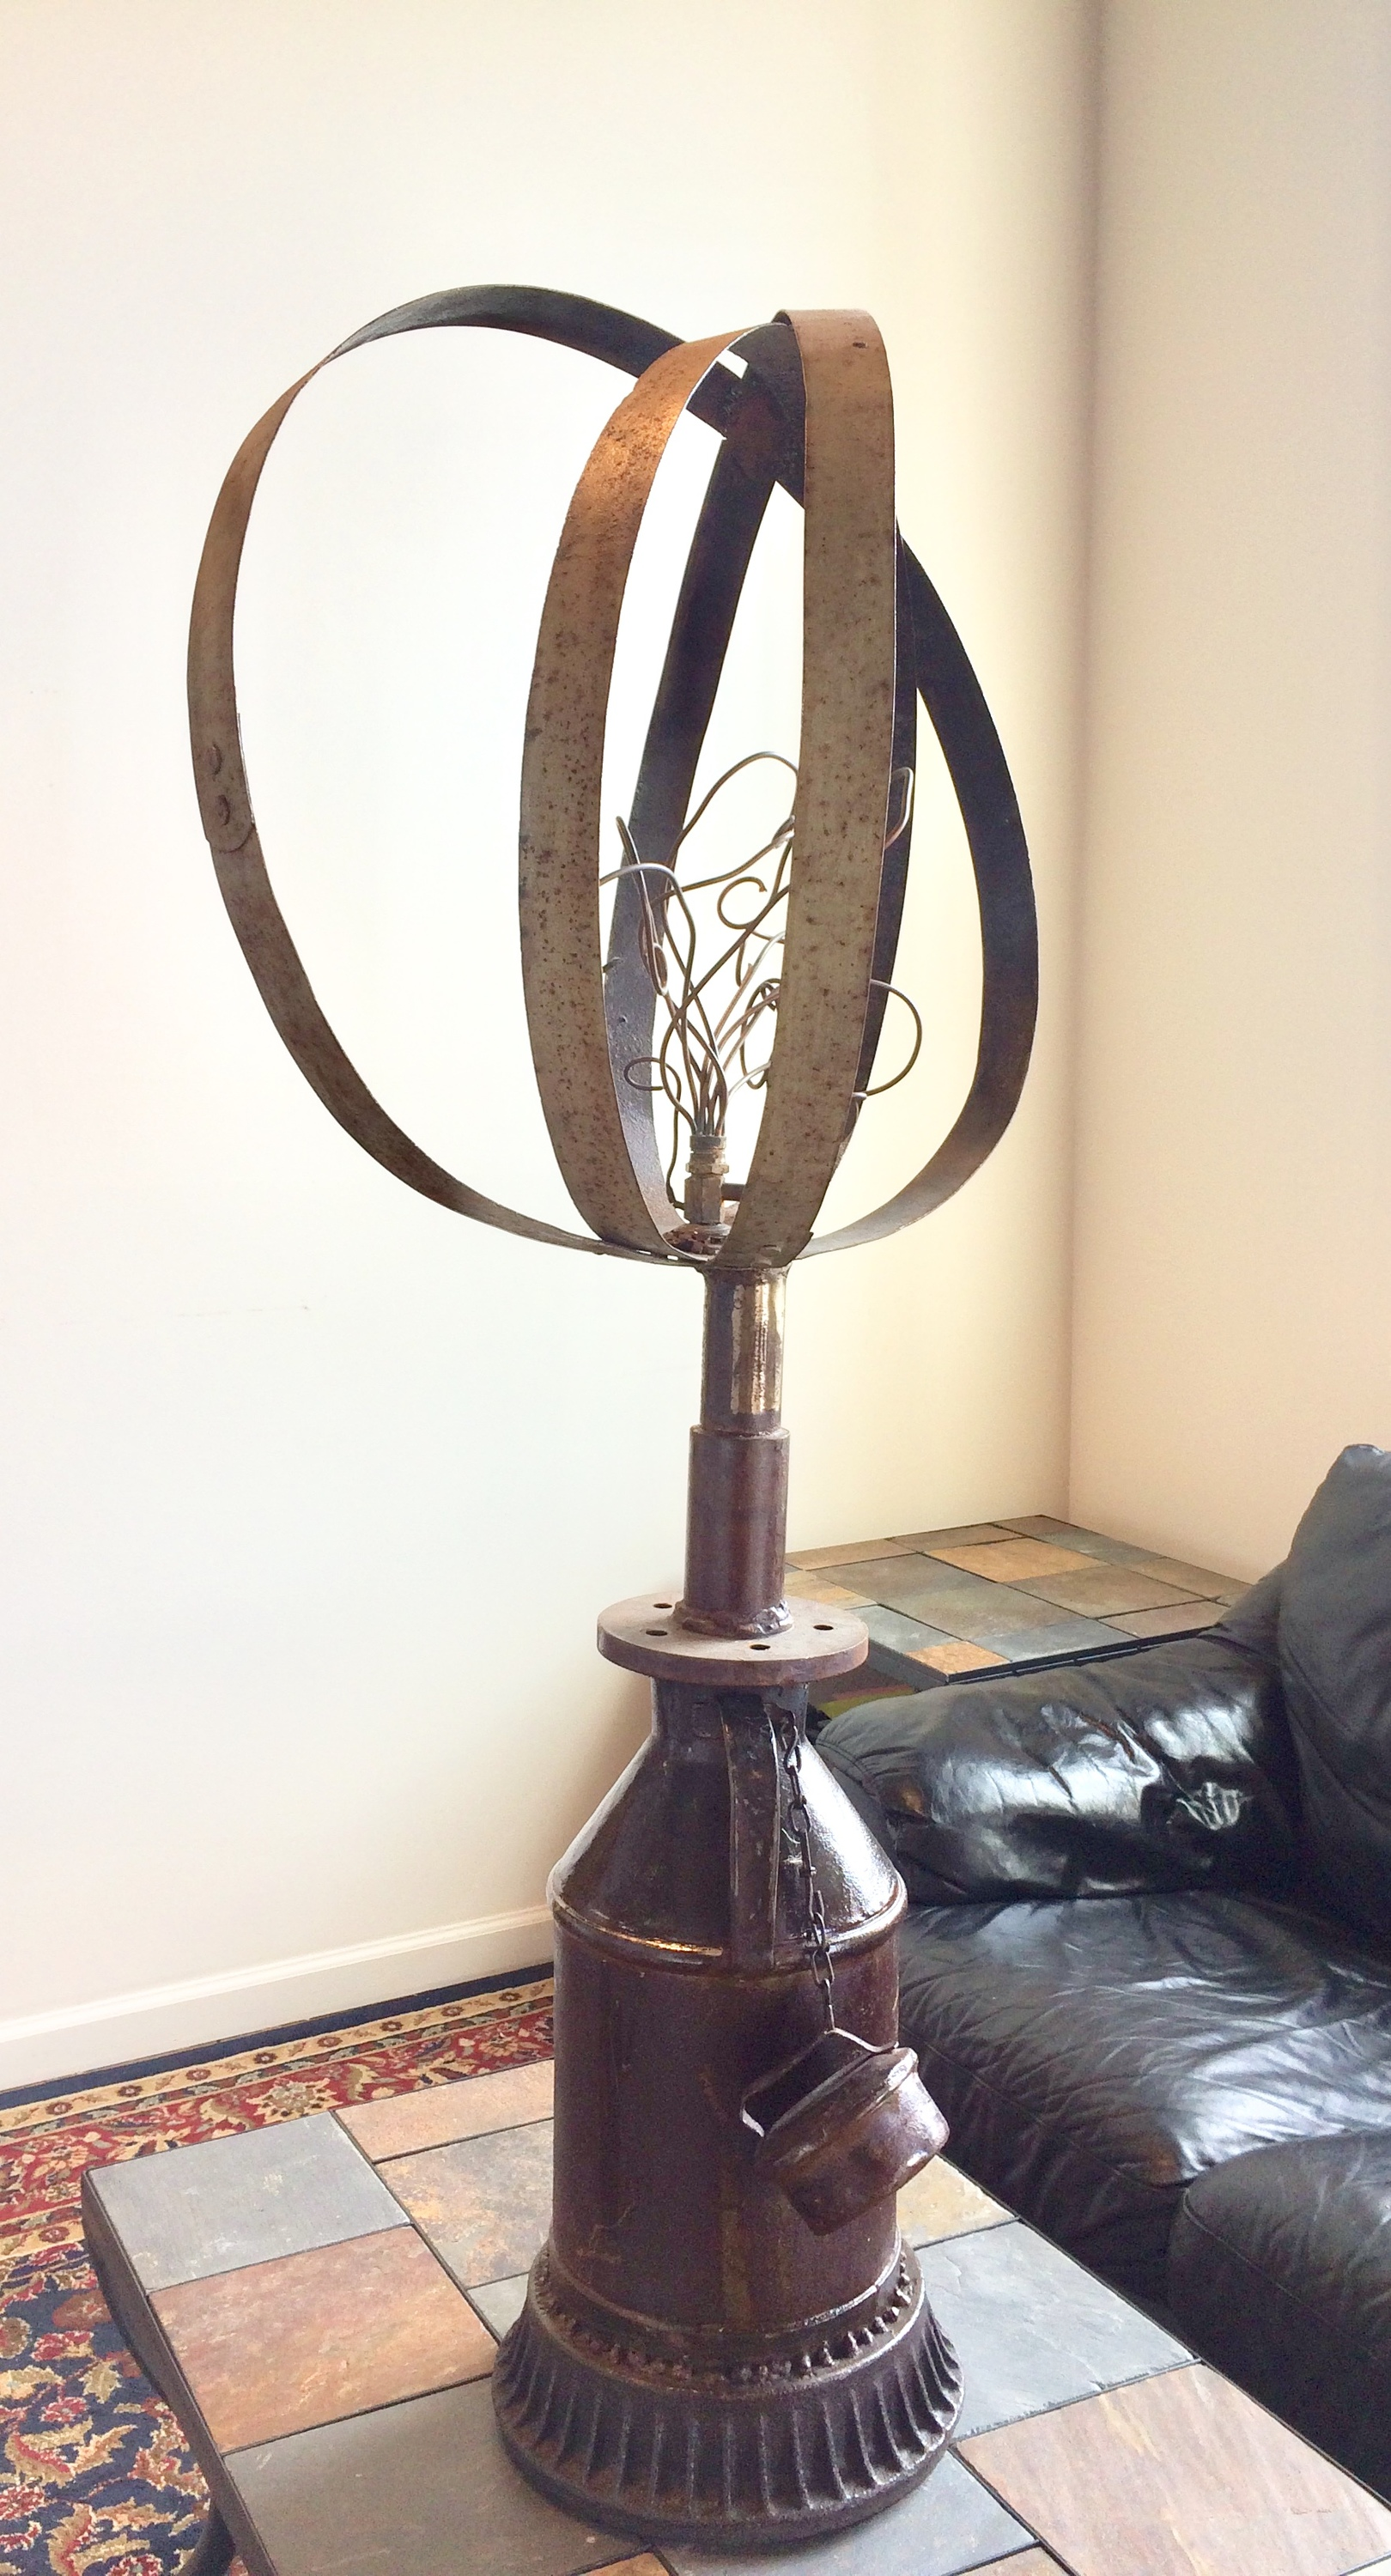 Sculpture appointed side metals 54x24x15 pzcc4y